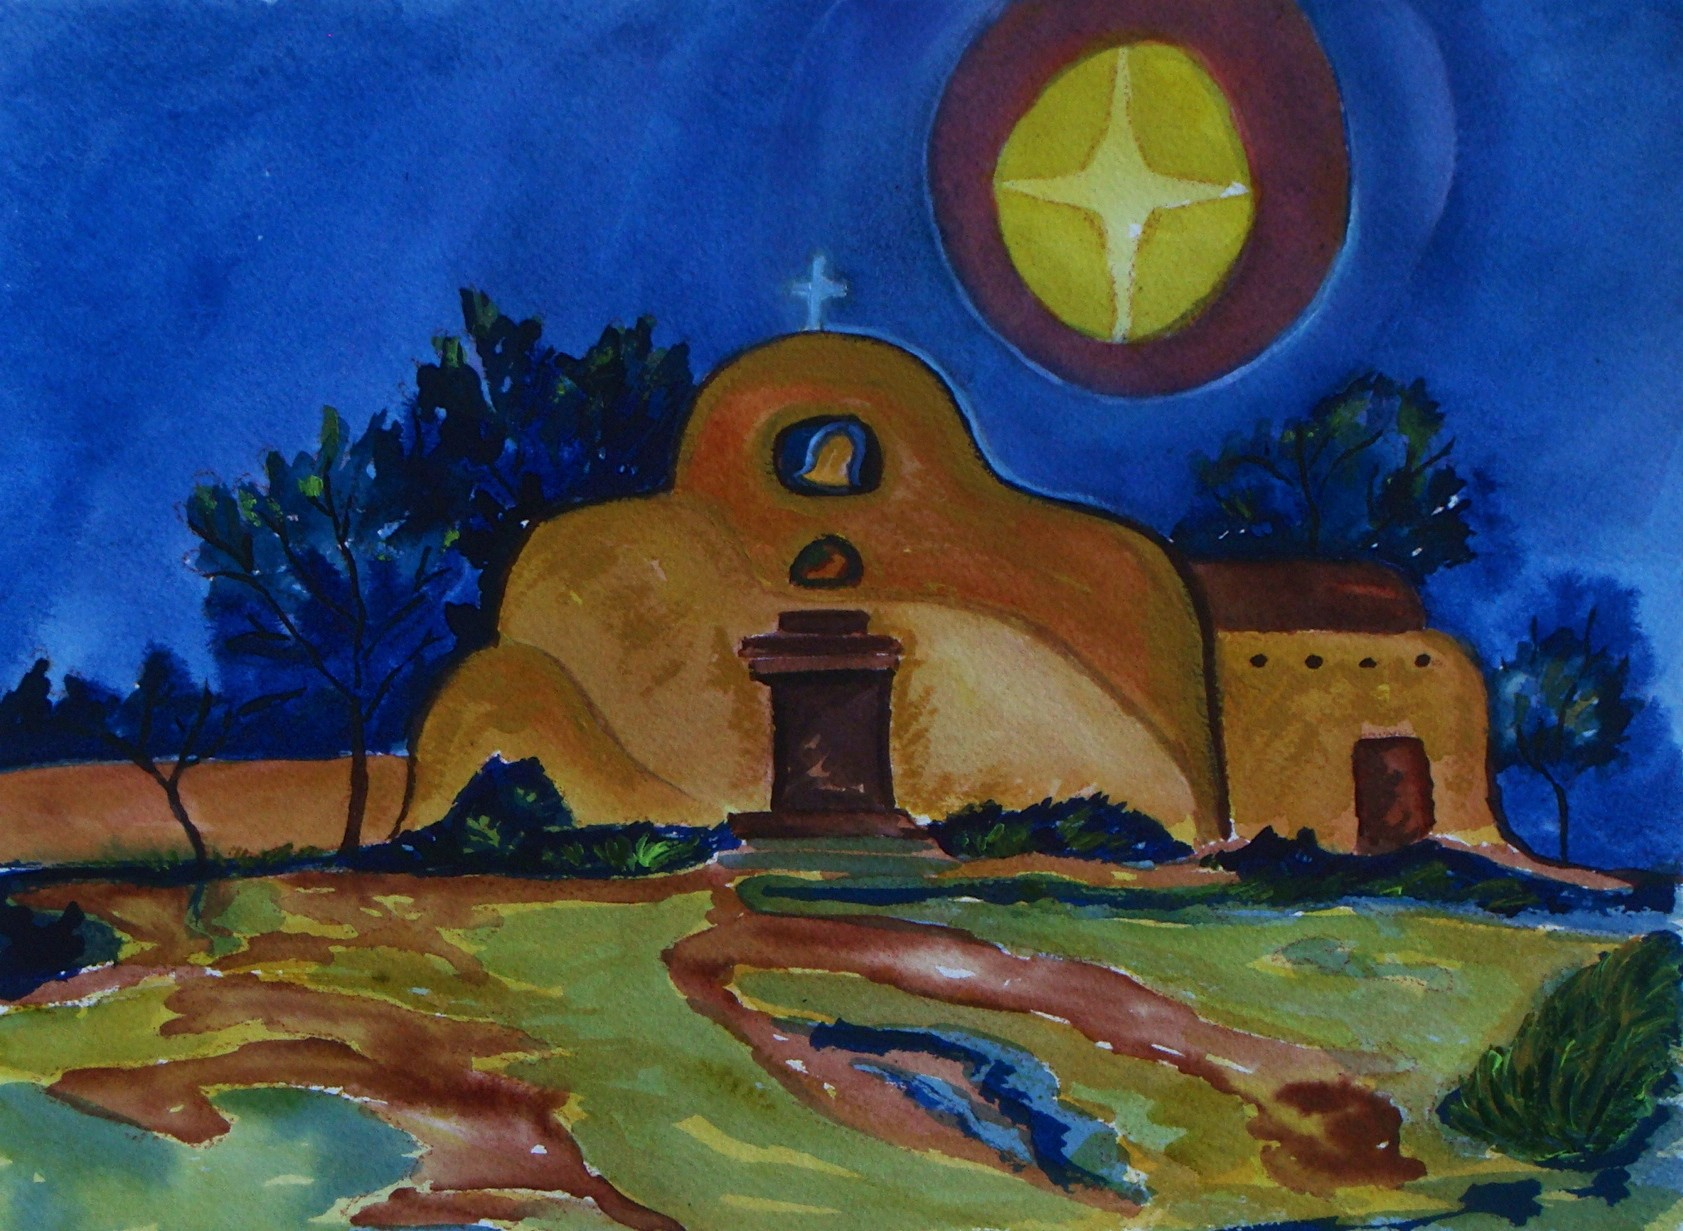 Starry Night, watercolor, 12 z 9, 2014 SOLD